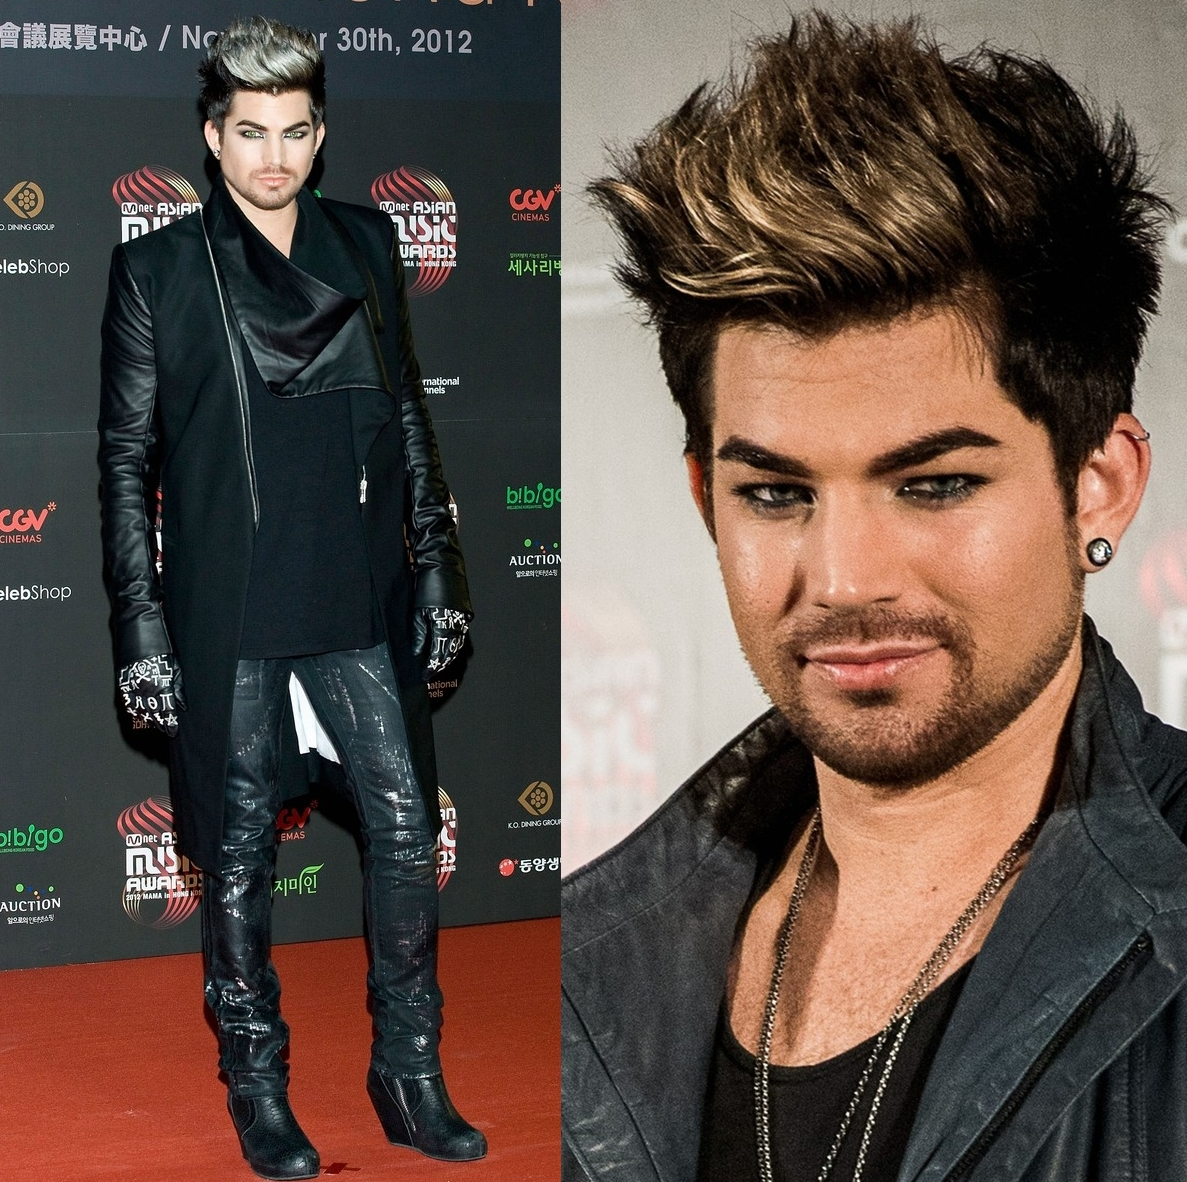 http://4.bp.blogspot.com/-WkuOq1hed-k/ULtcOWmEvXI/AAAAAAAAGIw/3e_8FnO8efc/s1600/adam-lambert-mnet-asian-music-awards-performance-watch-now-01-horz.jpg